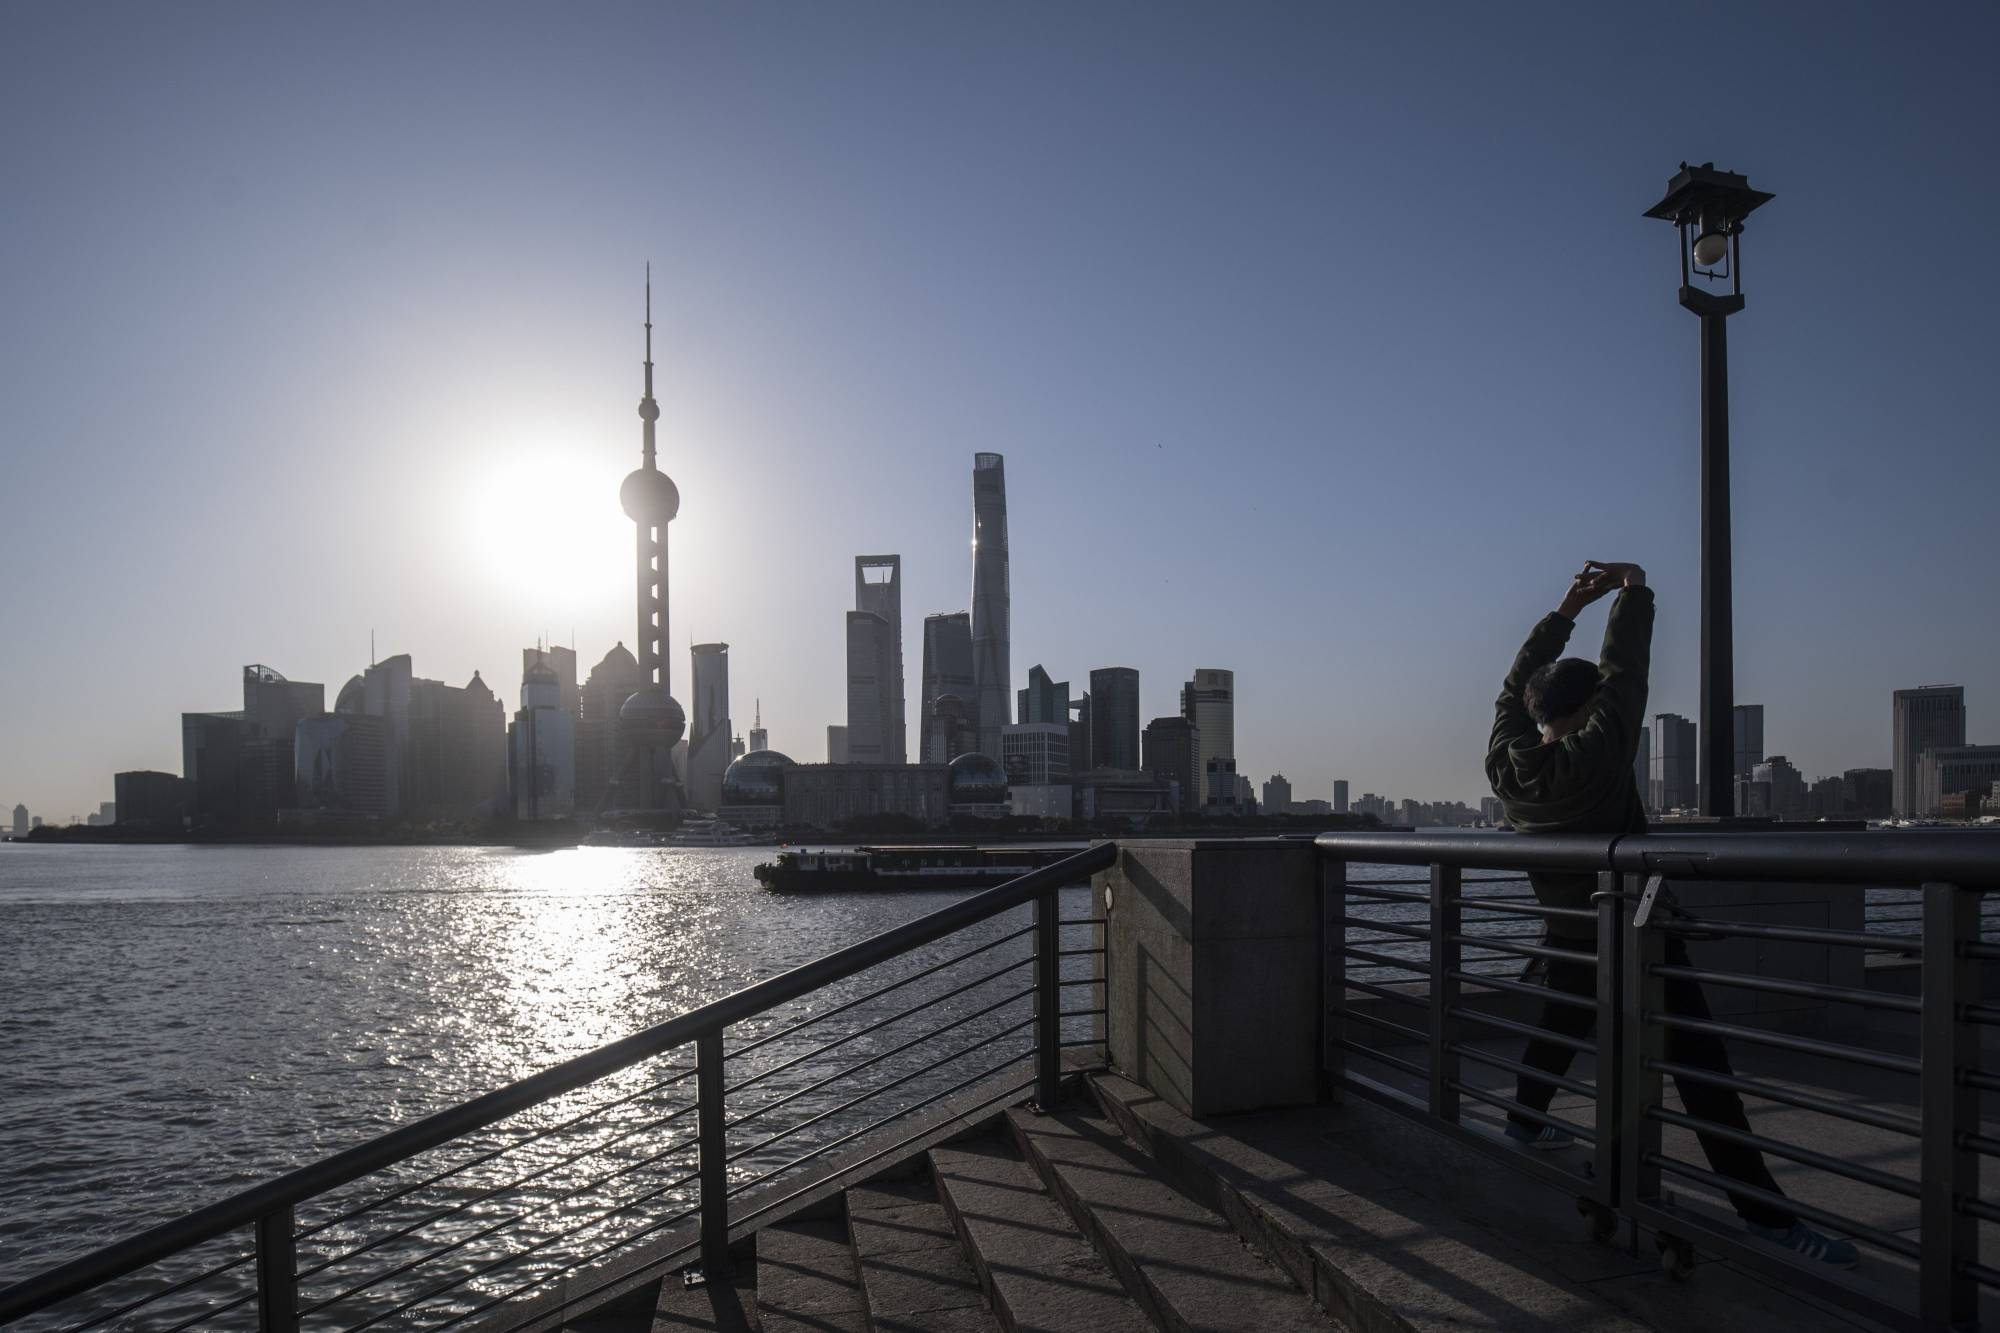 Just six U.S.-dollar funds with exposure to China have sought to raise capital this year, down from 21 last year, according to researcher Preqin. | BLOOMBERG